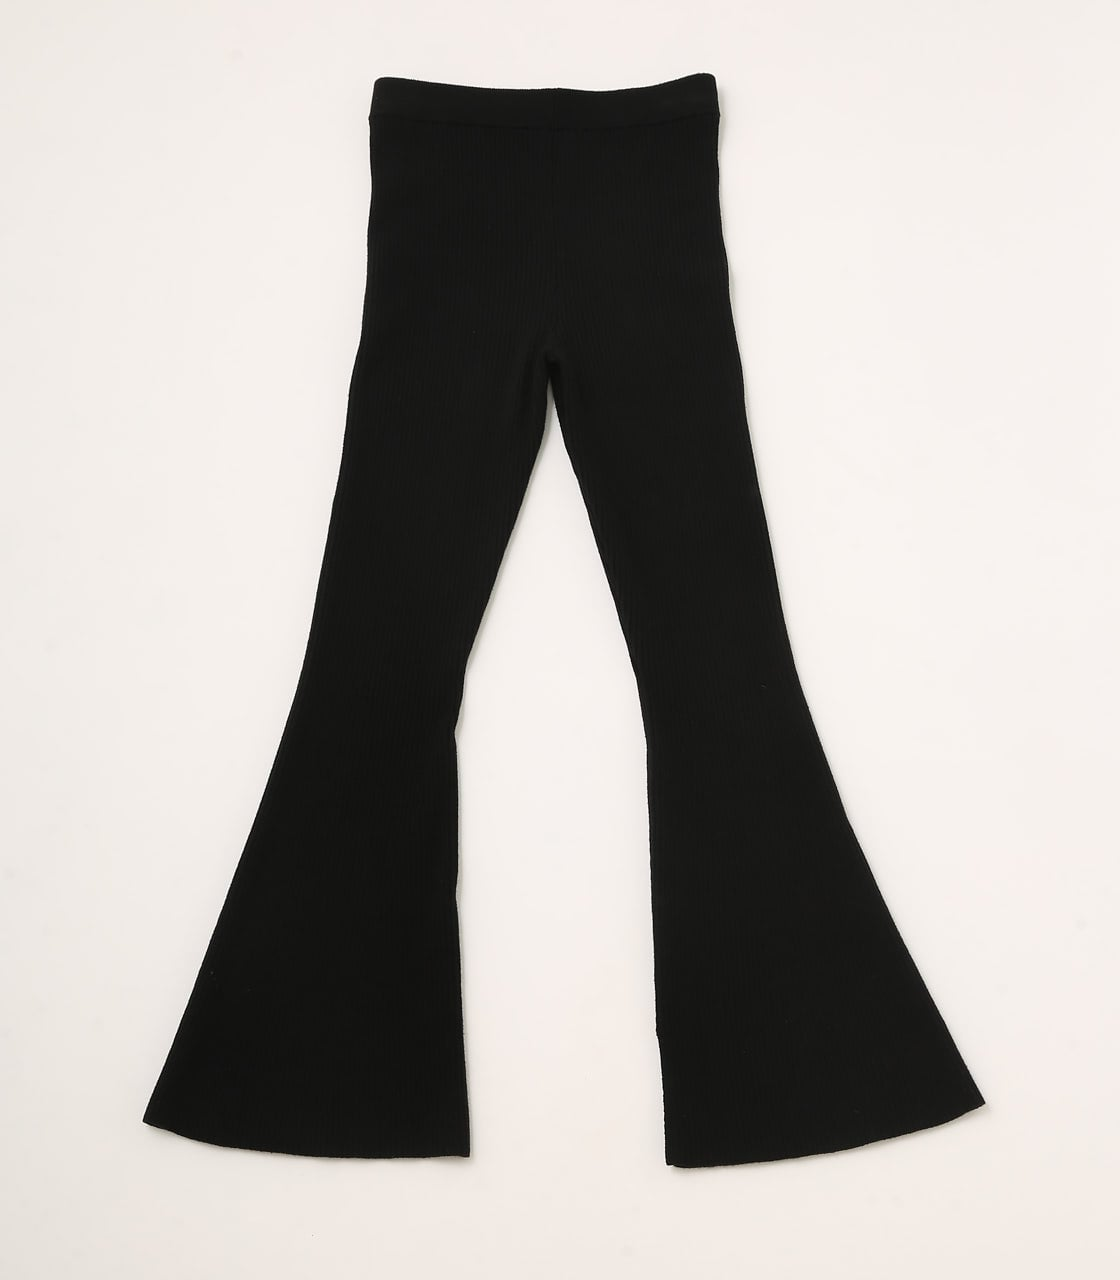 【AZUL BY MOUSSY】RIB KNIT FLARE PANTS 詳細画像 BLK 6